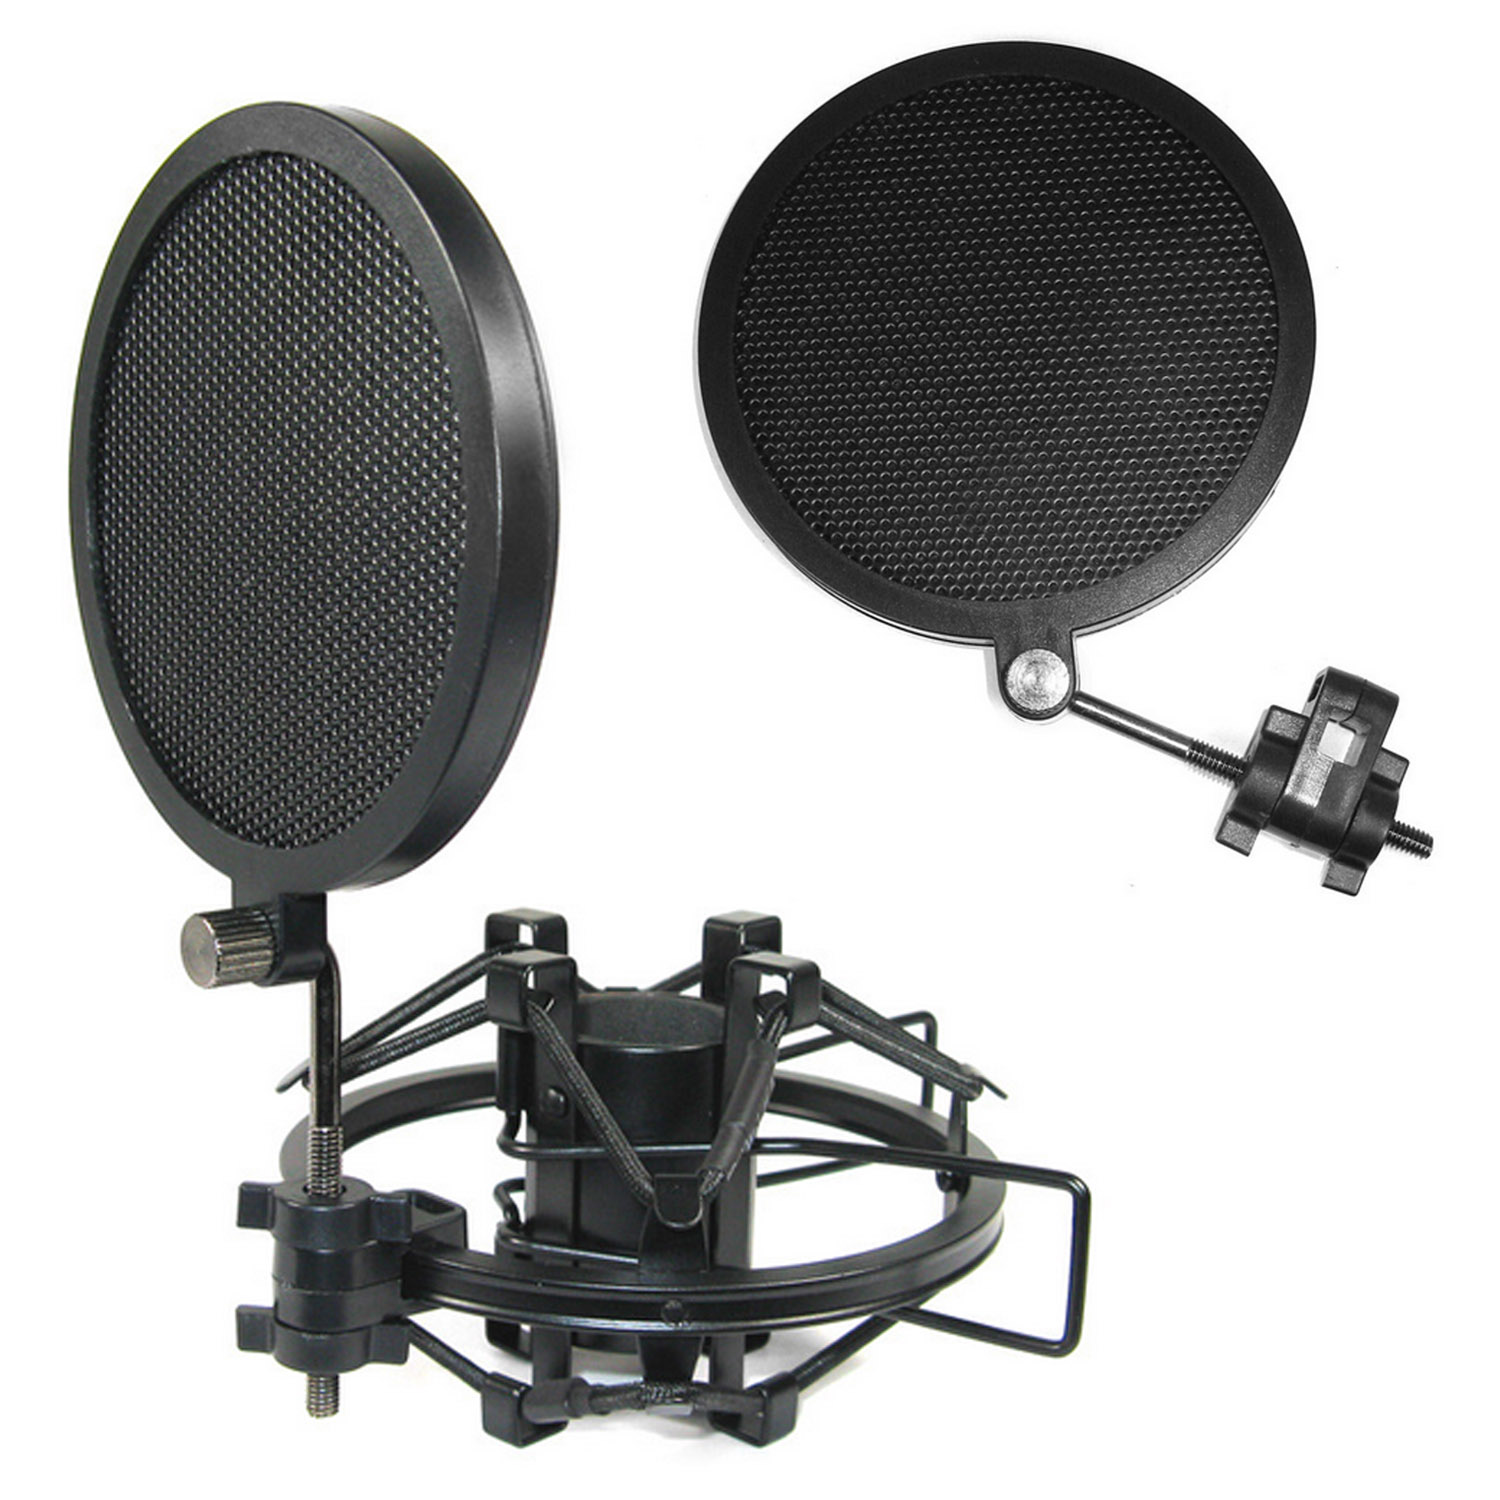 Besegad Double-layer Iron Mesh Microphone Mic Wind Screen Anti Pop Filter For Studio Recording Video Chat Broadcasting